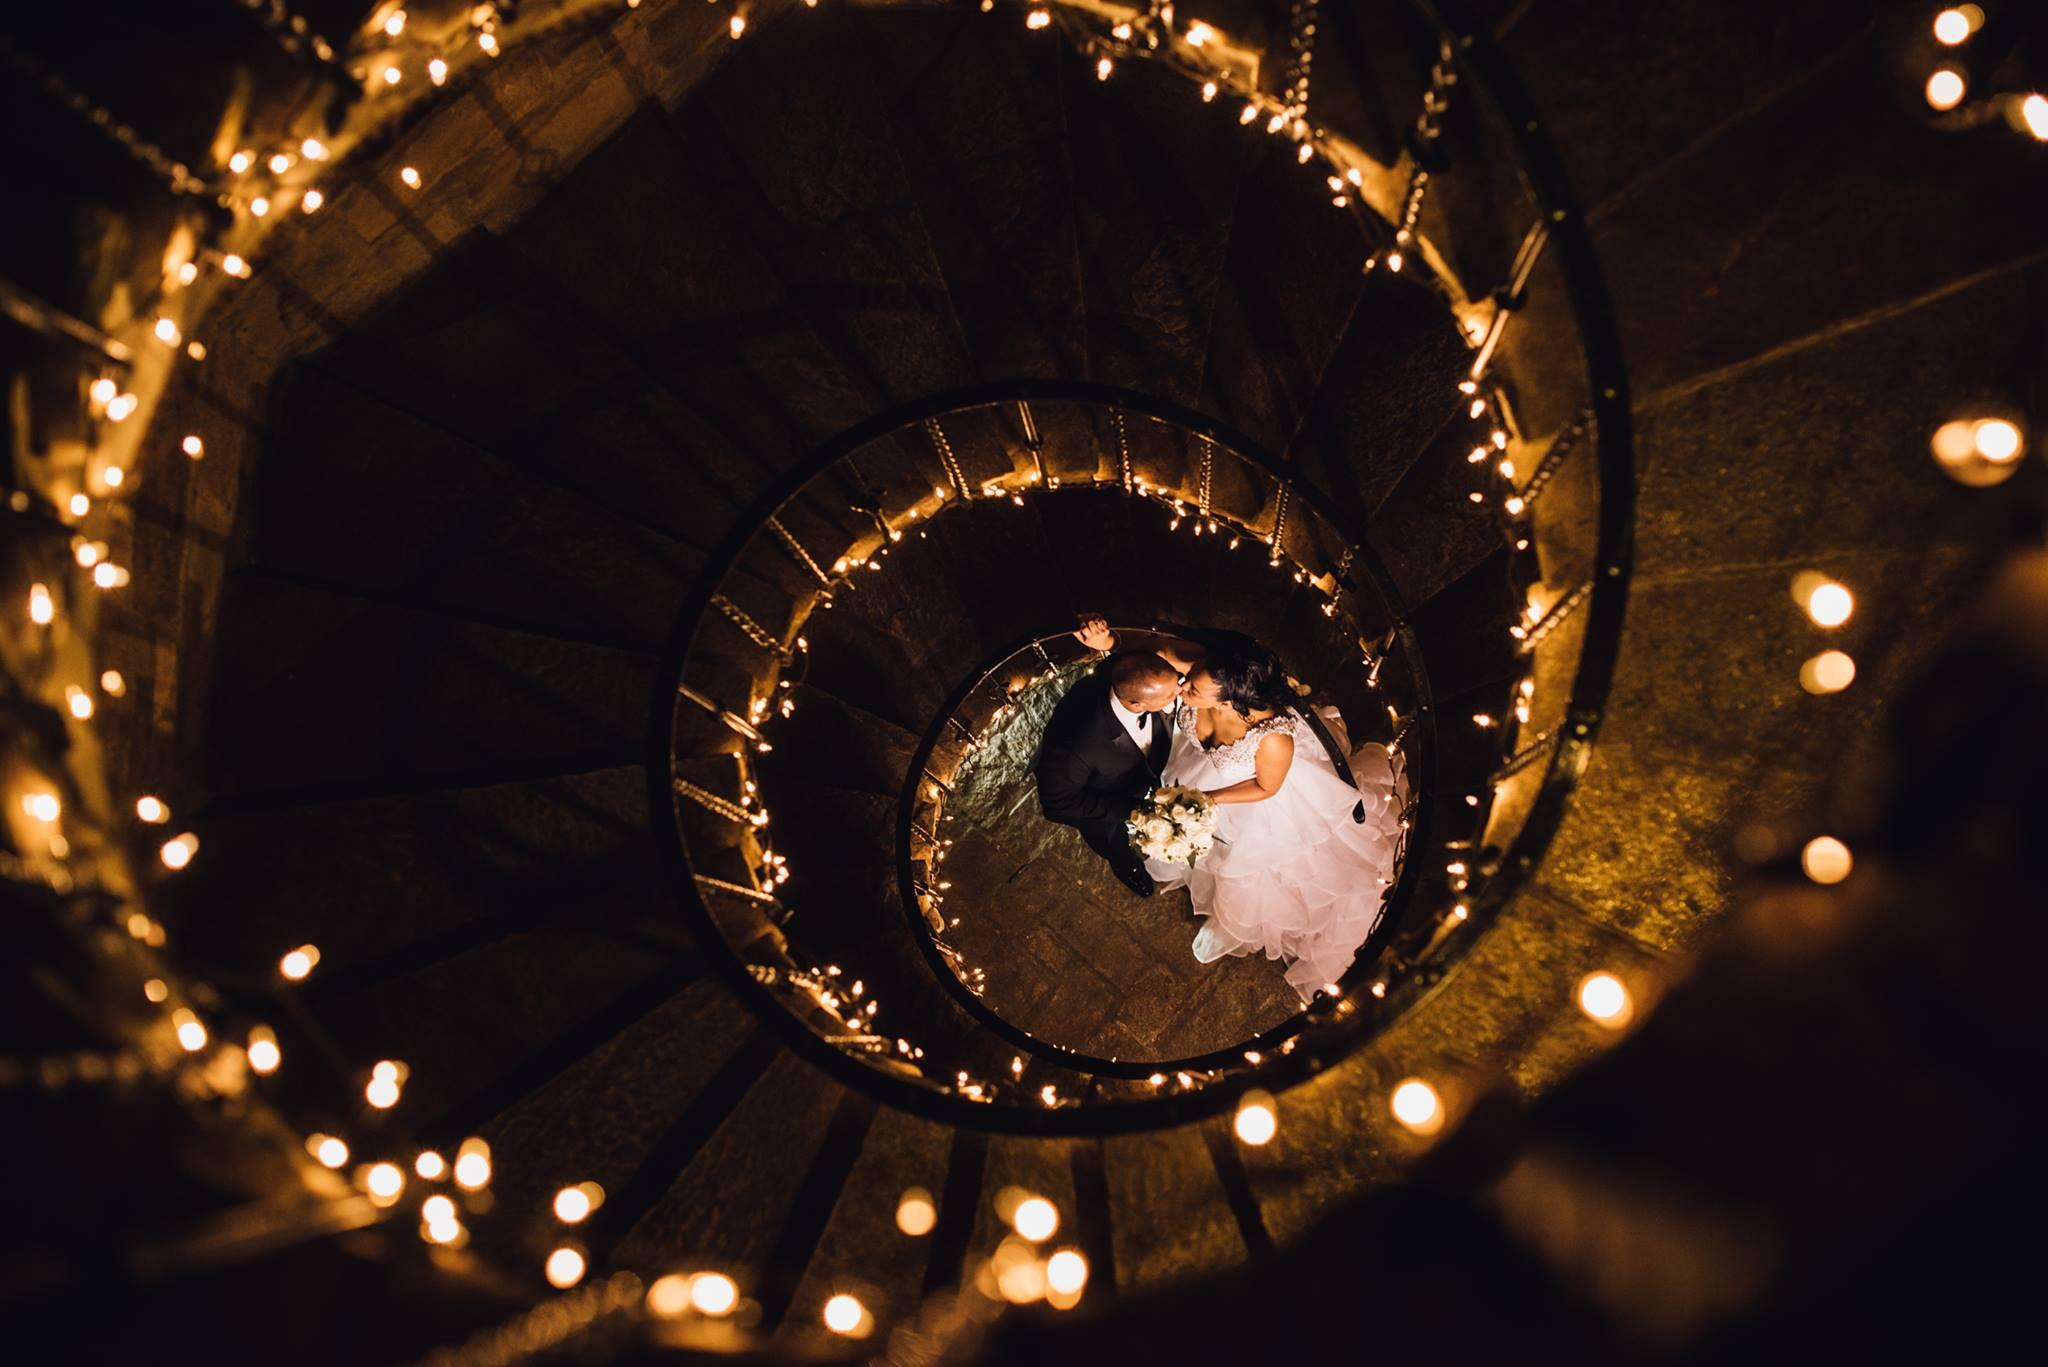 spiral staircase with twinkle lights and couple kissing at bottom